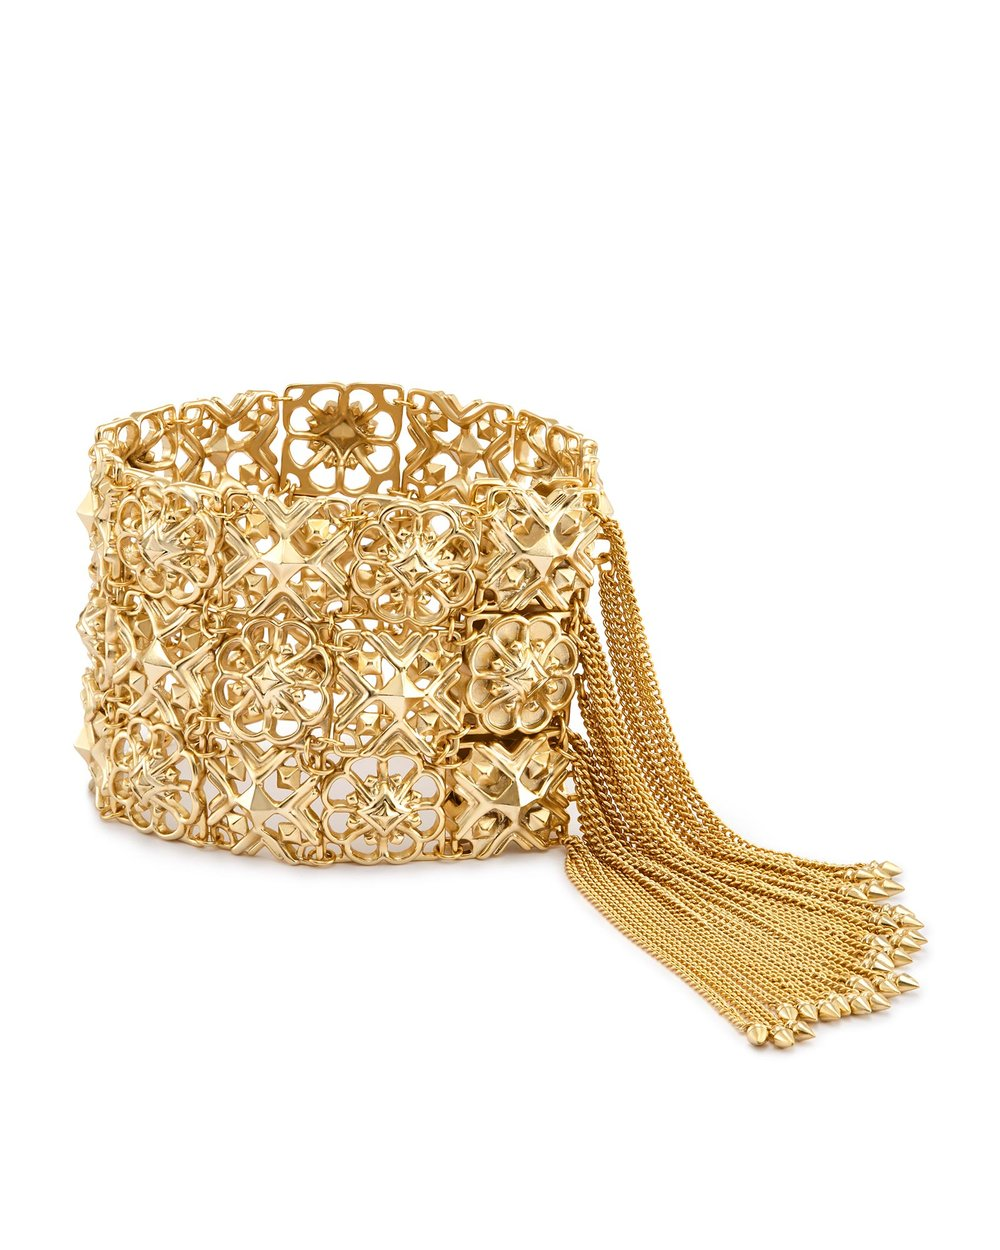 Kendra Scott iris statement bracelet in gold